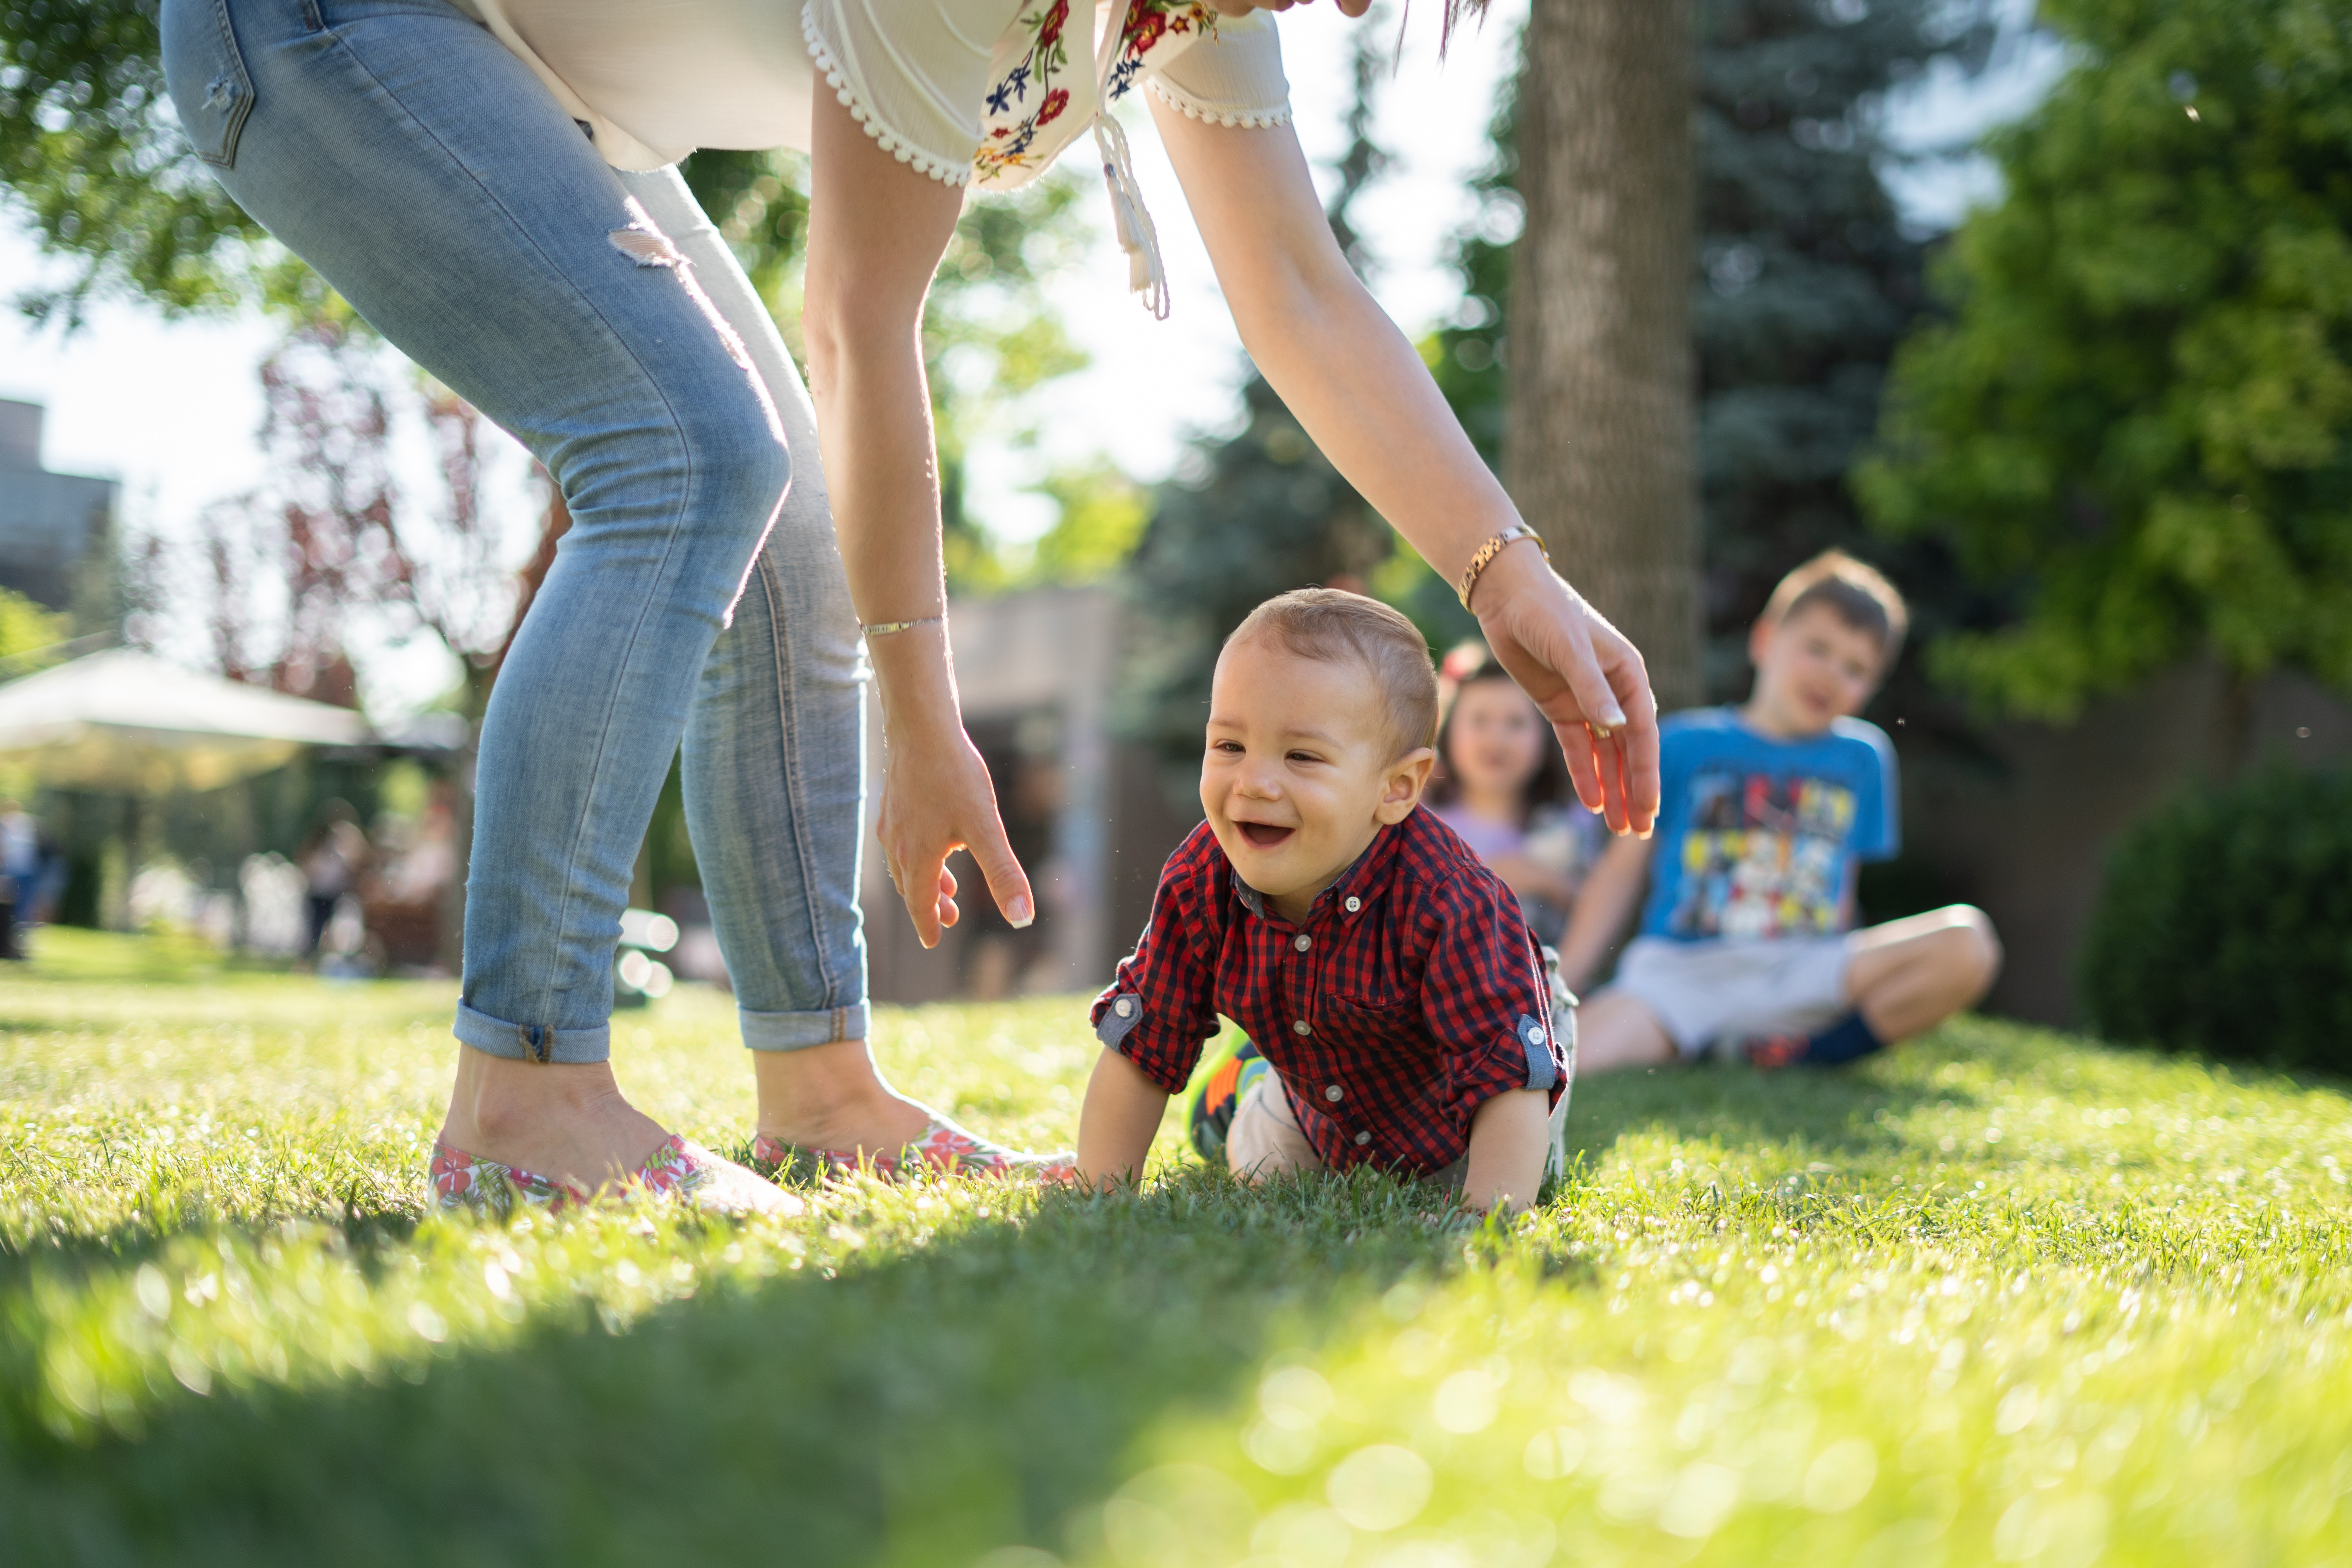 Baby crawling on grass